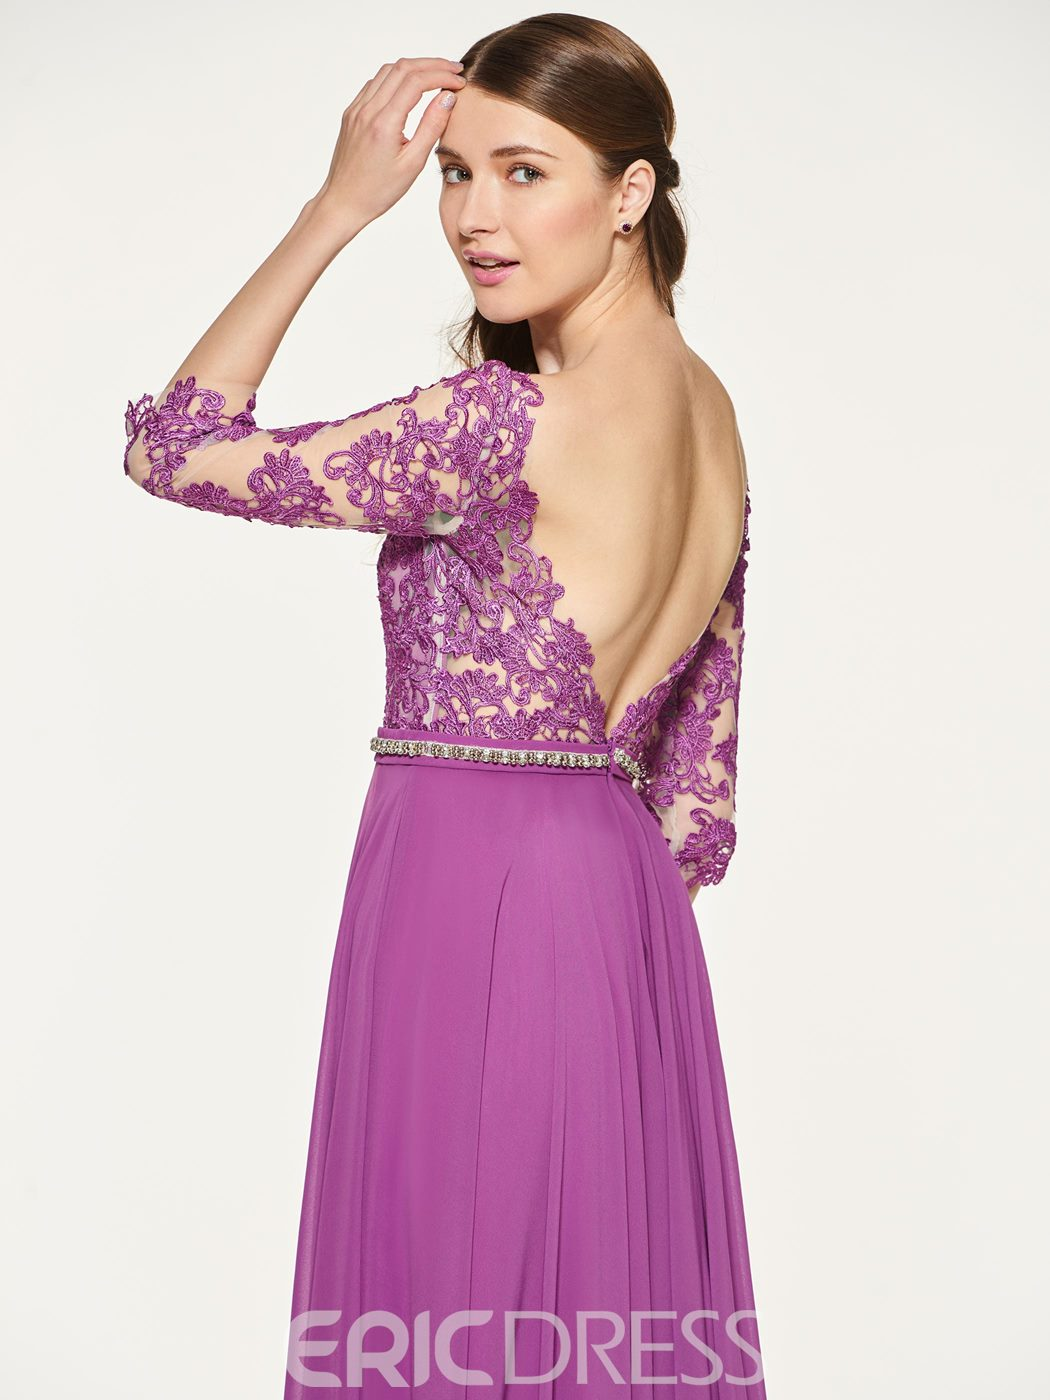 Ericdress A Line Backless Long Bridesmaid Dress